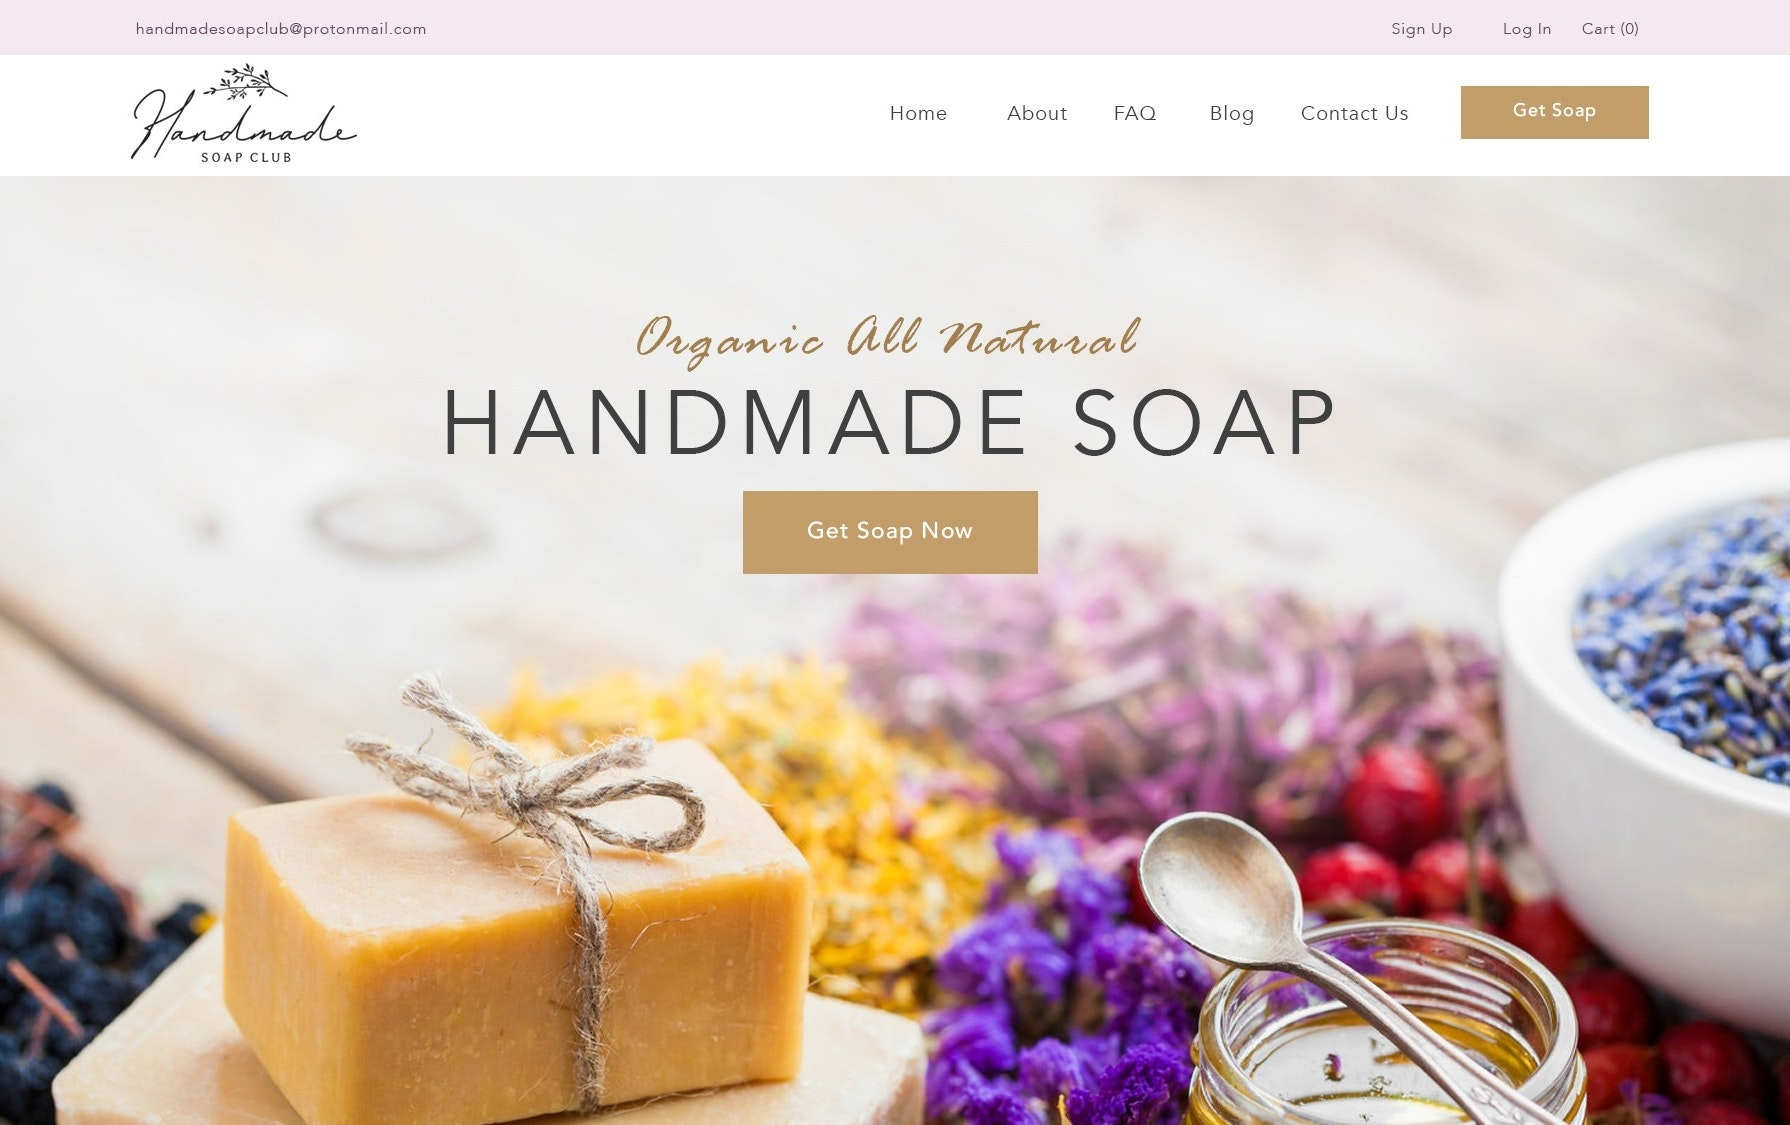 Handmade Soap Club